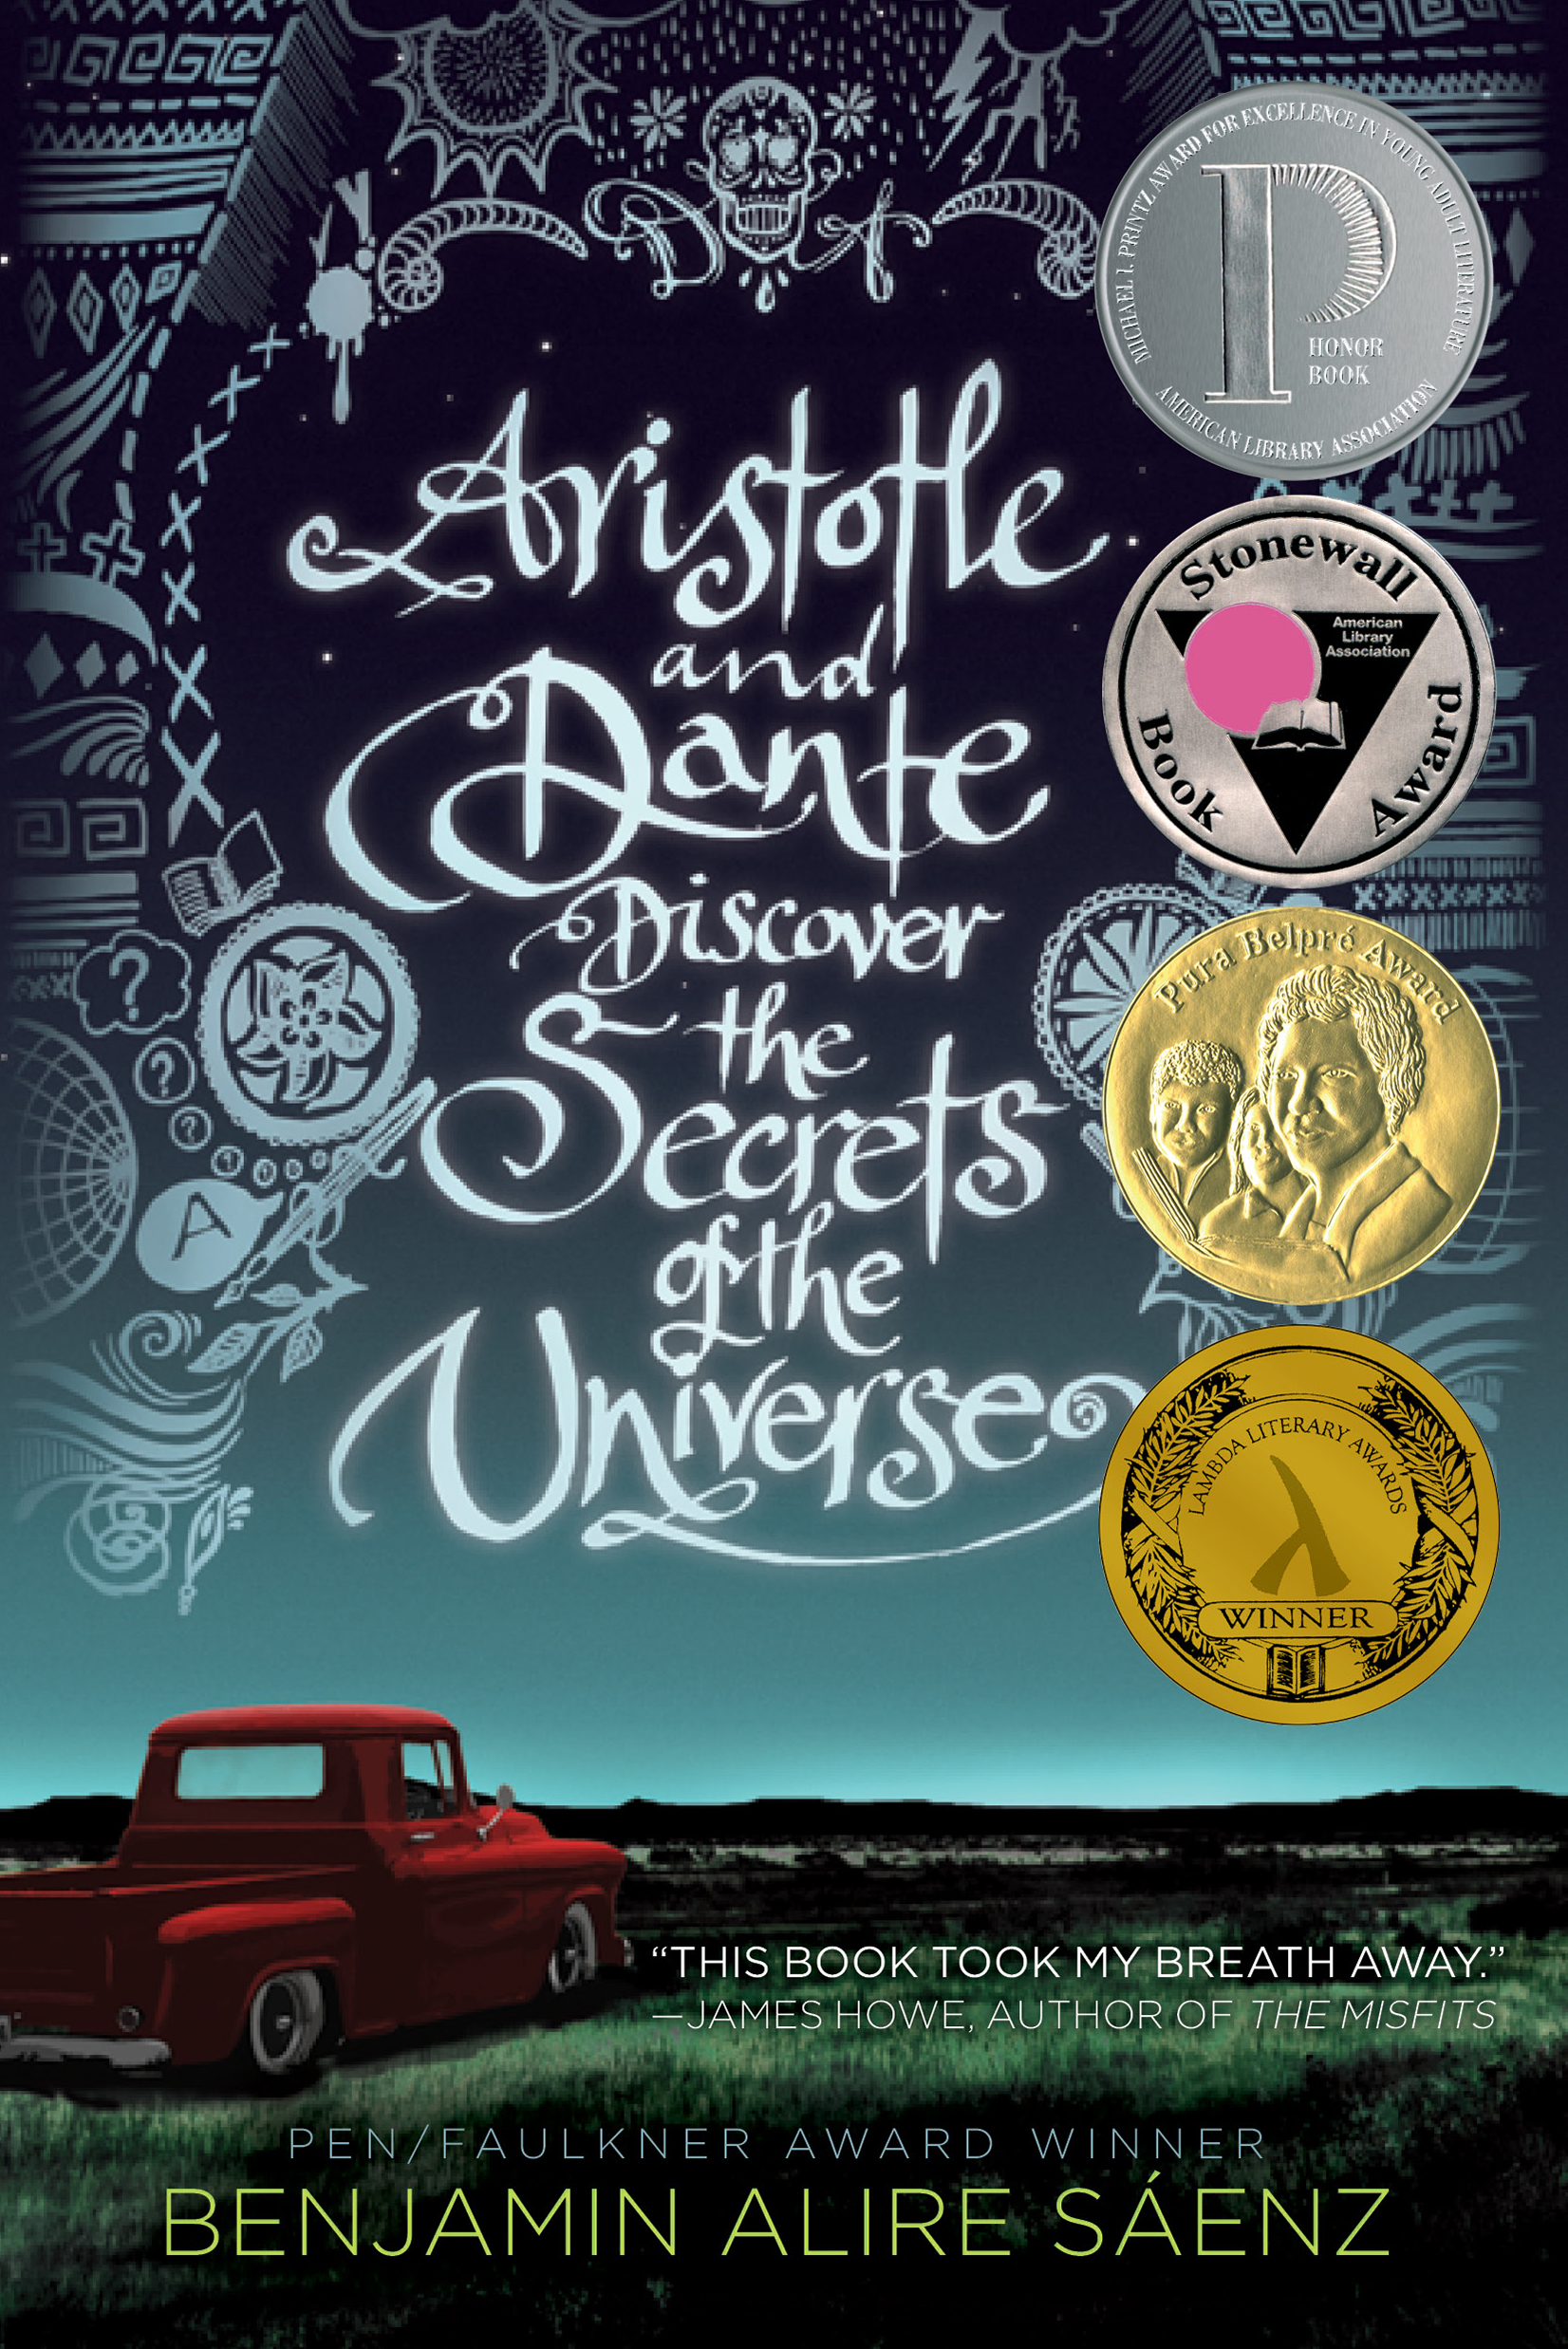 Book Cover Image (jpg): Aristotle and Dante Discover the Secrets of the  Universe